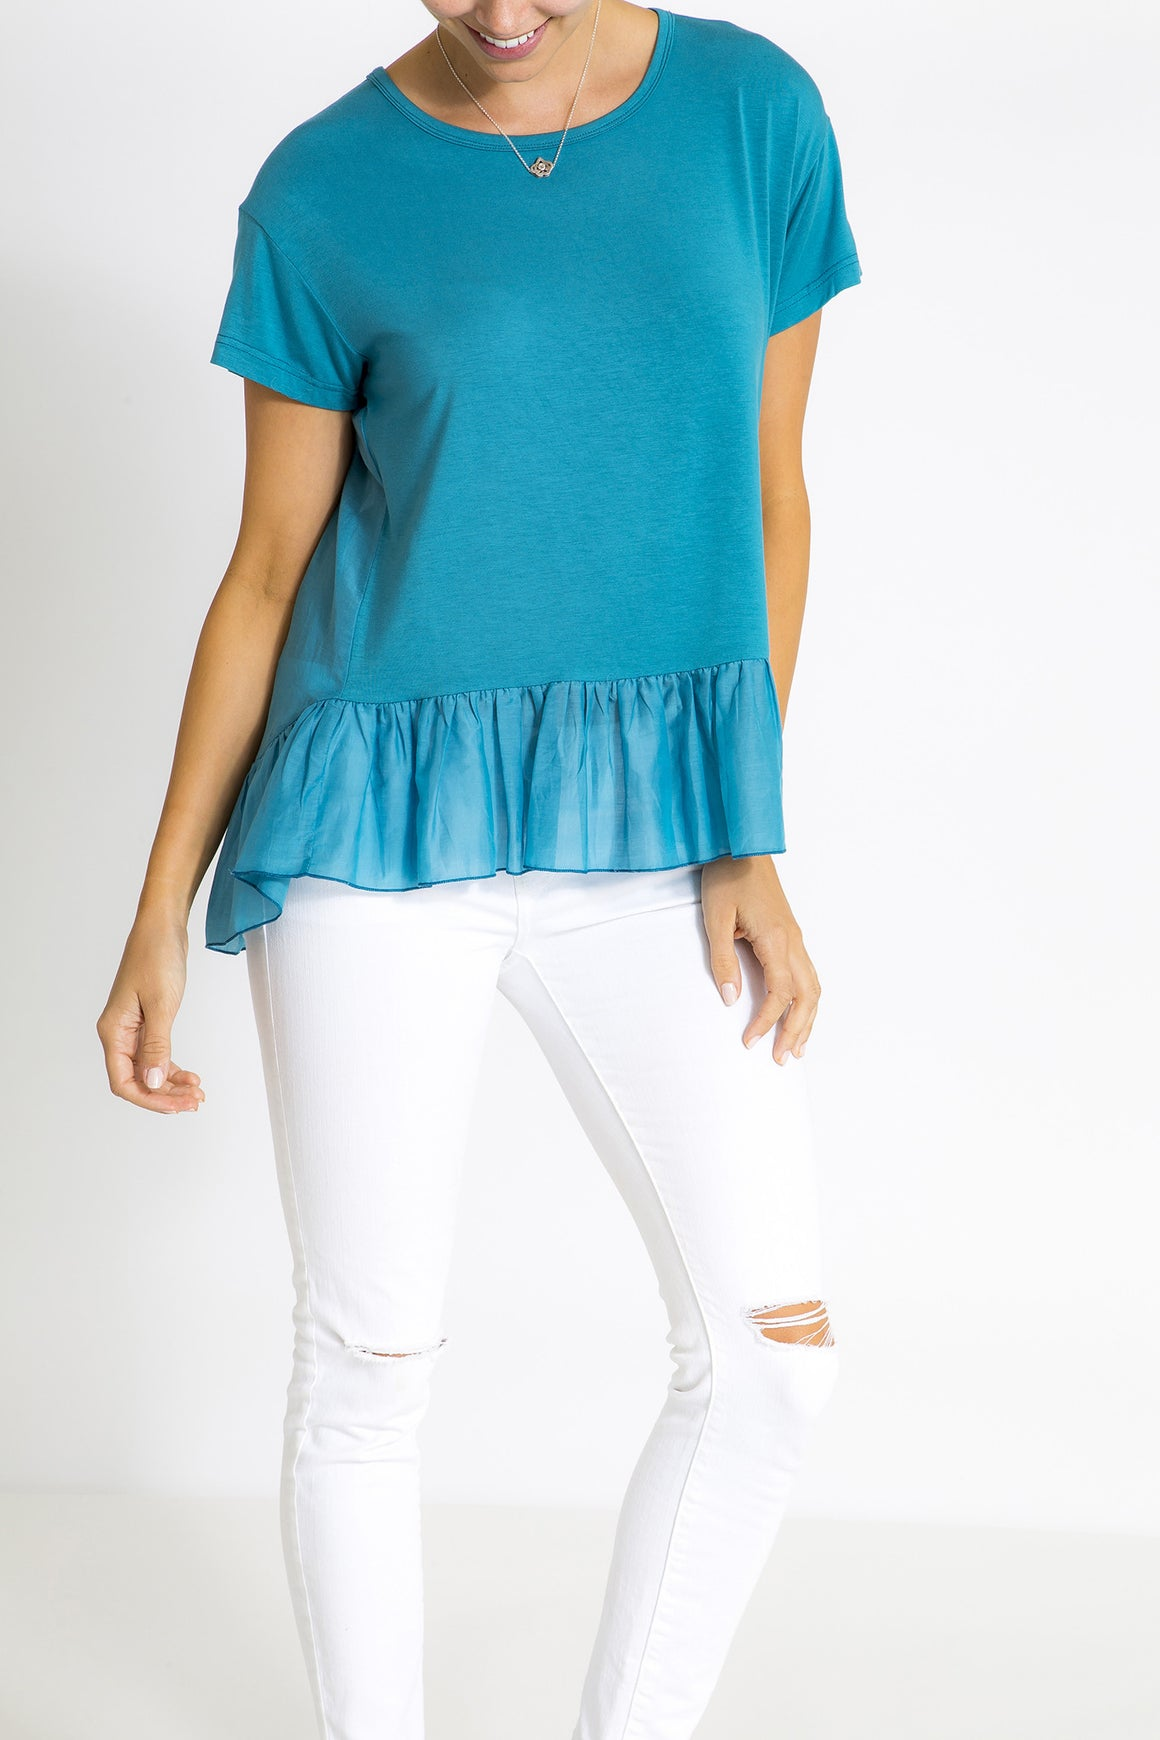 Ruffle Top - Peacock Blue